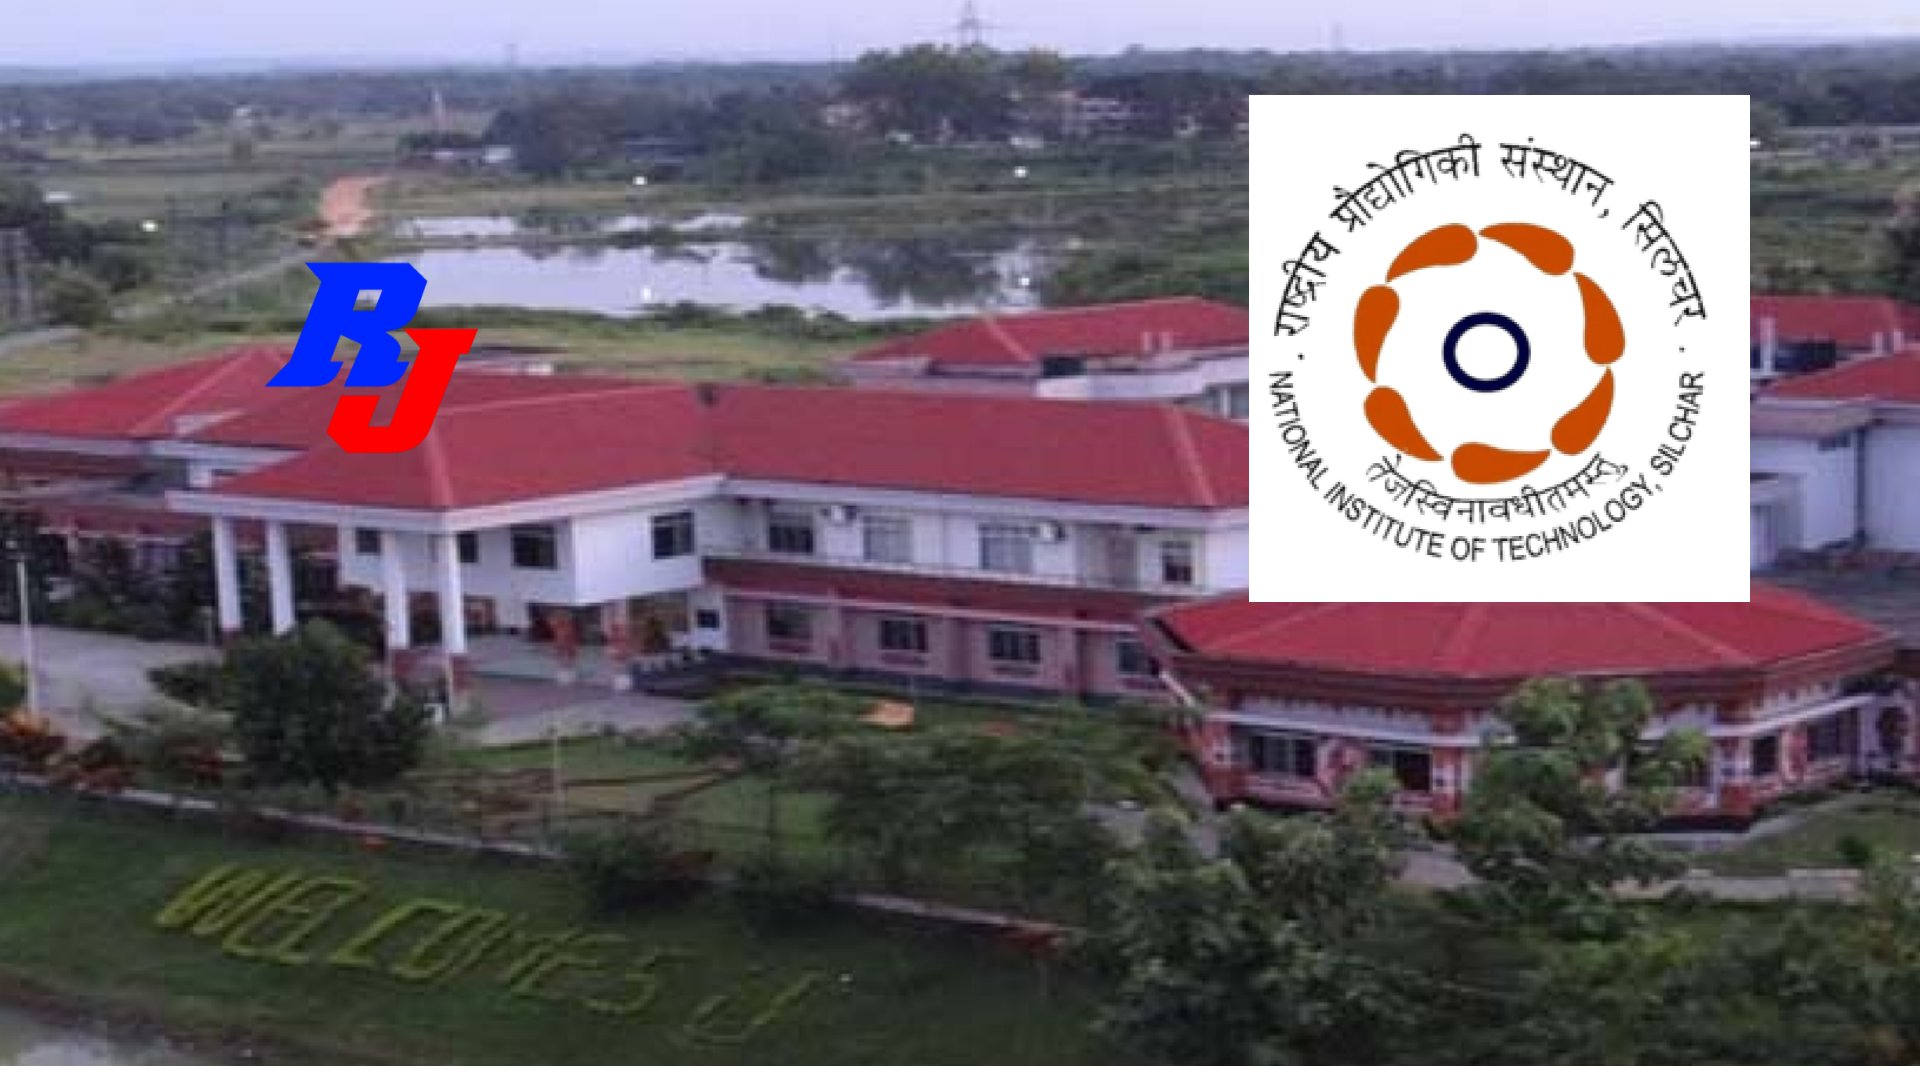 Faculty Recruitment in National Institute Of Technology, Silchar, Assam